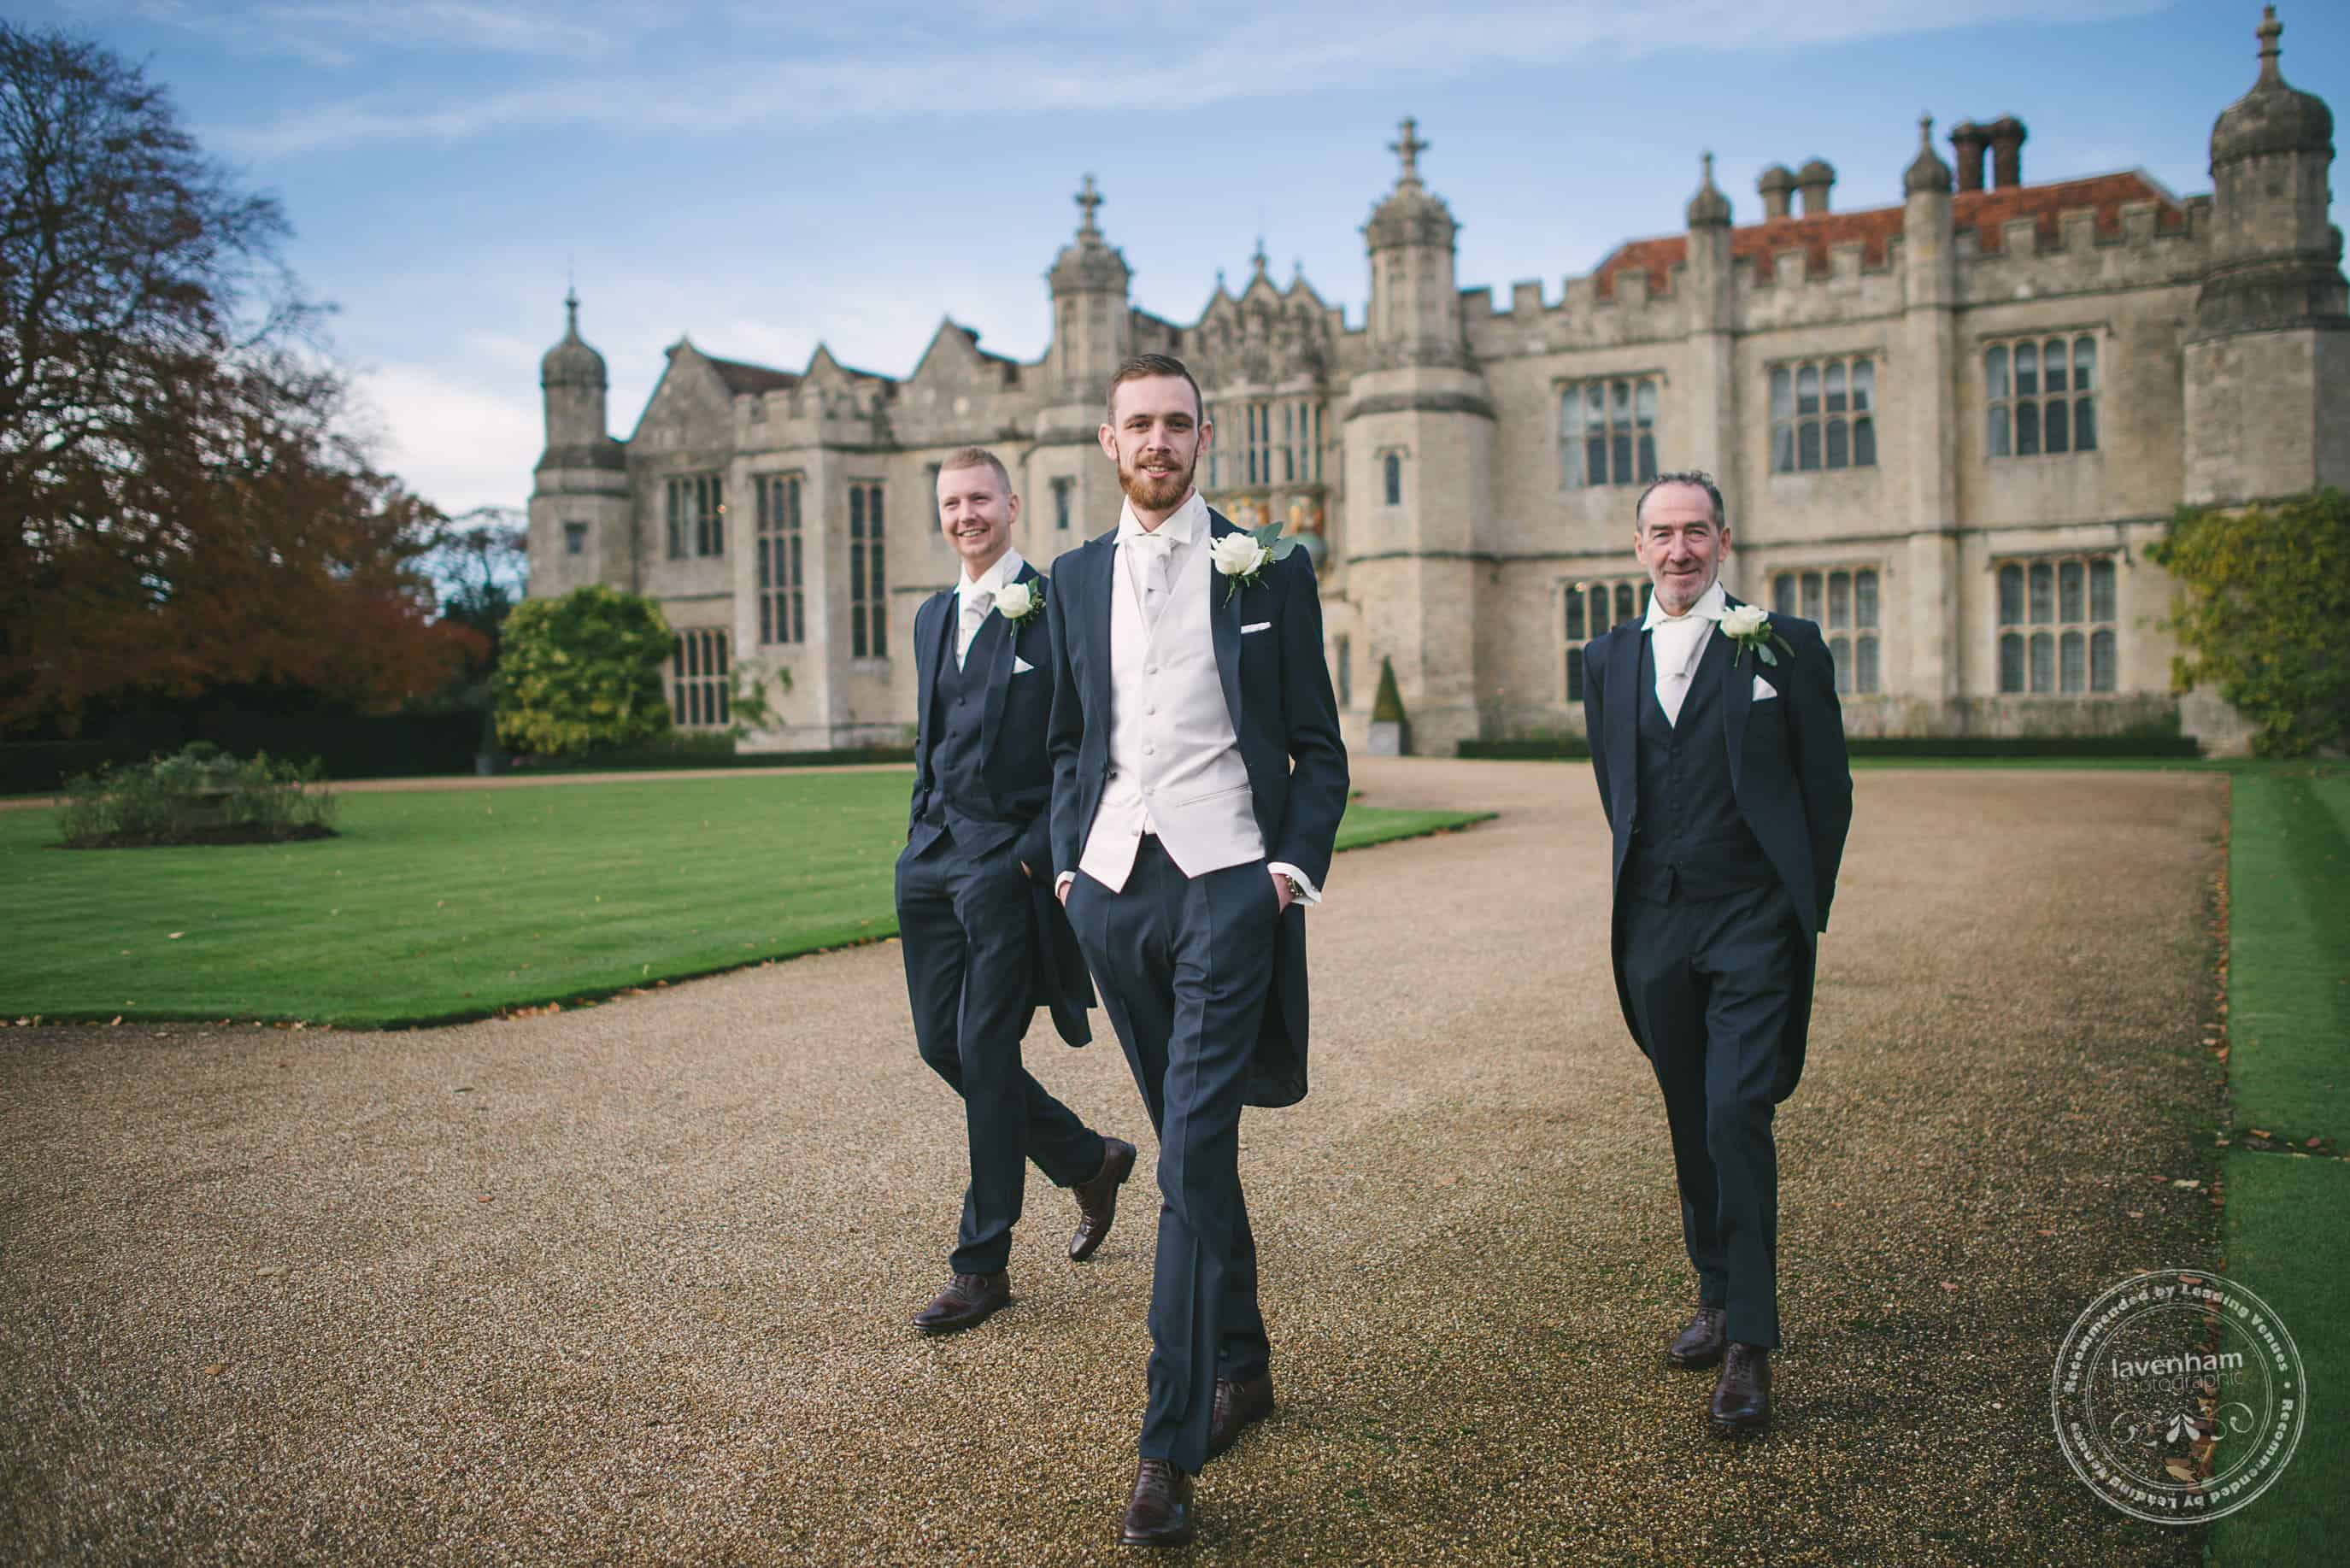 181116 Hengrave Hall Wedding Photographer 040